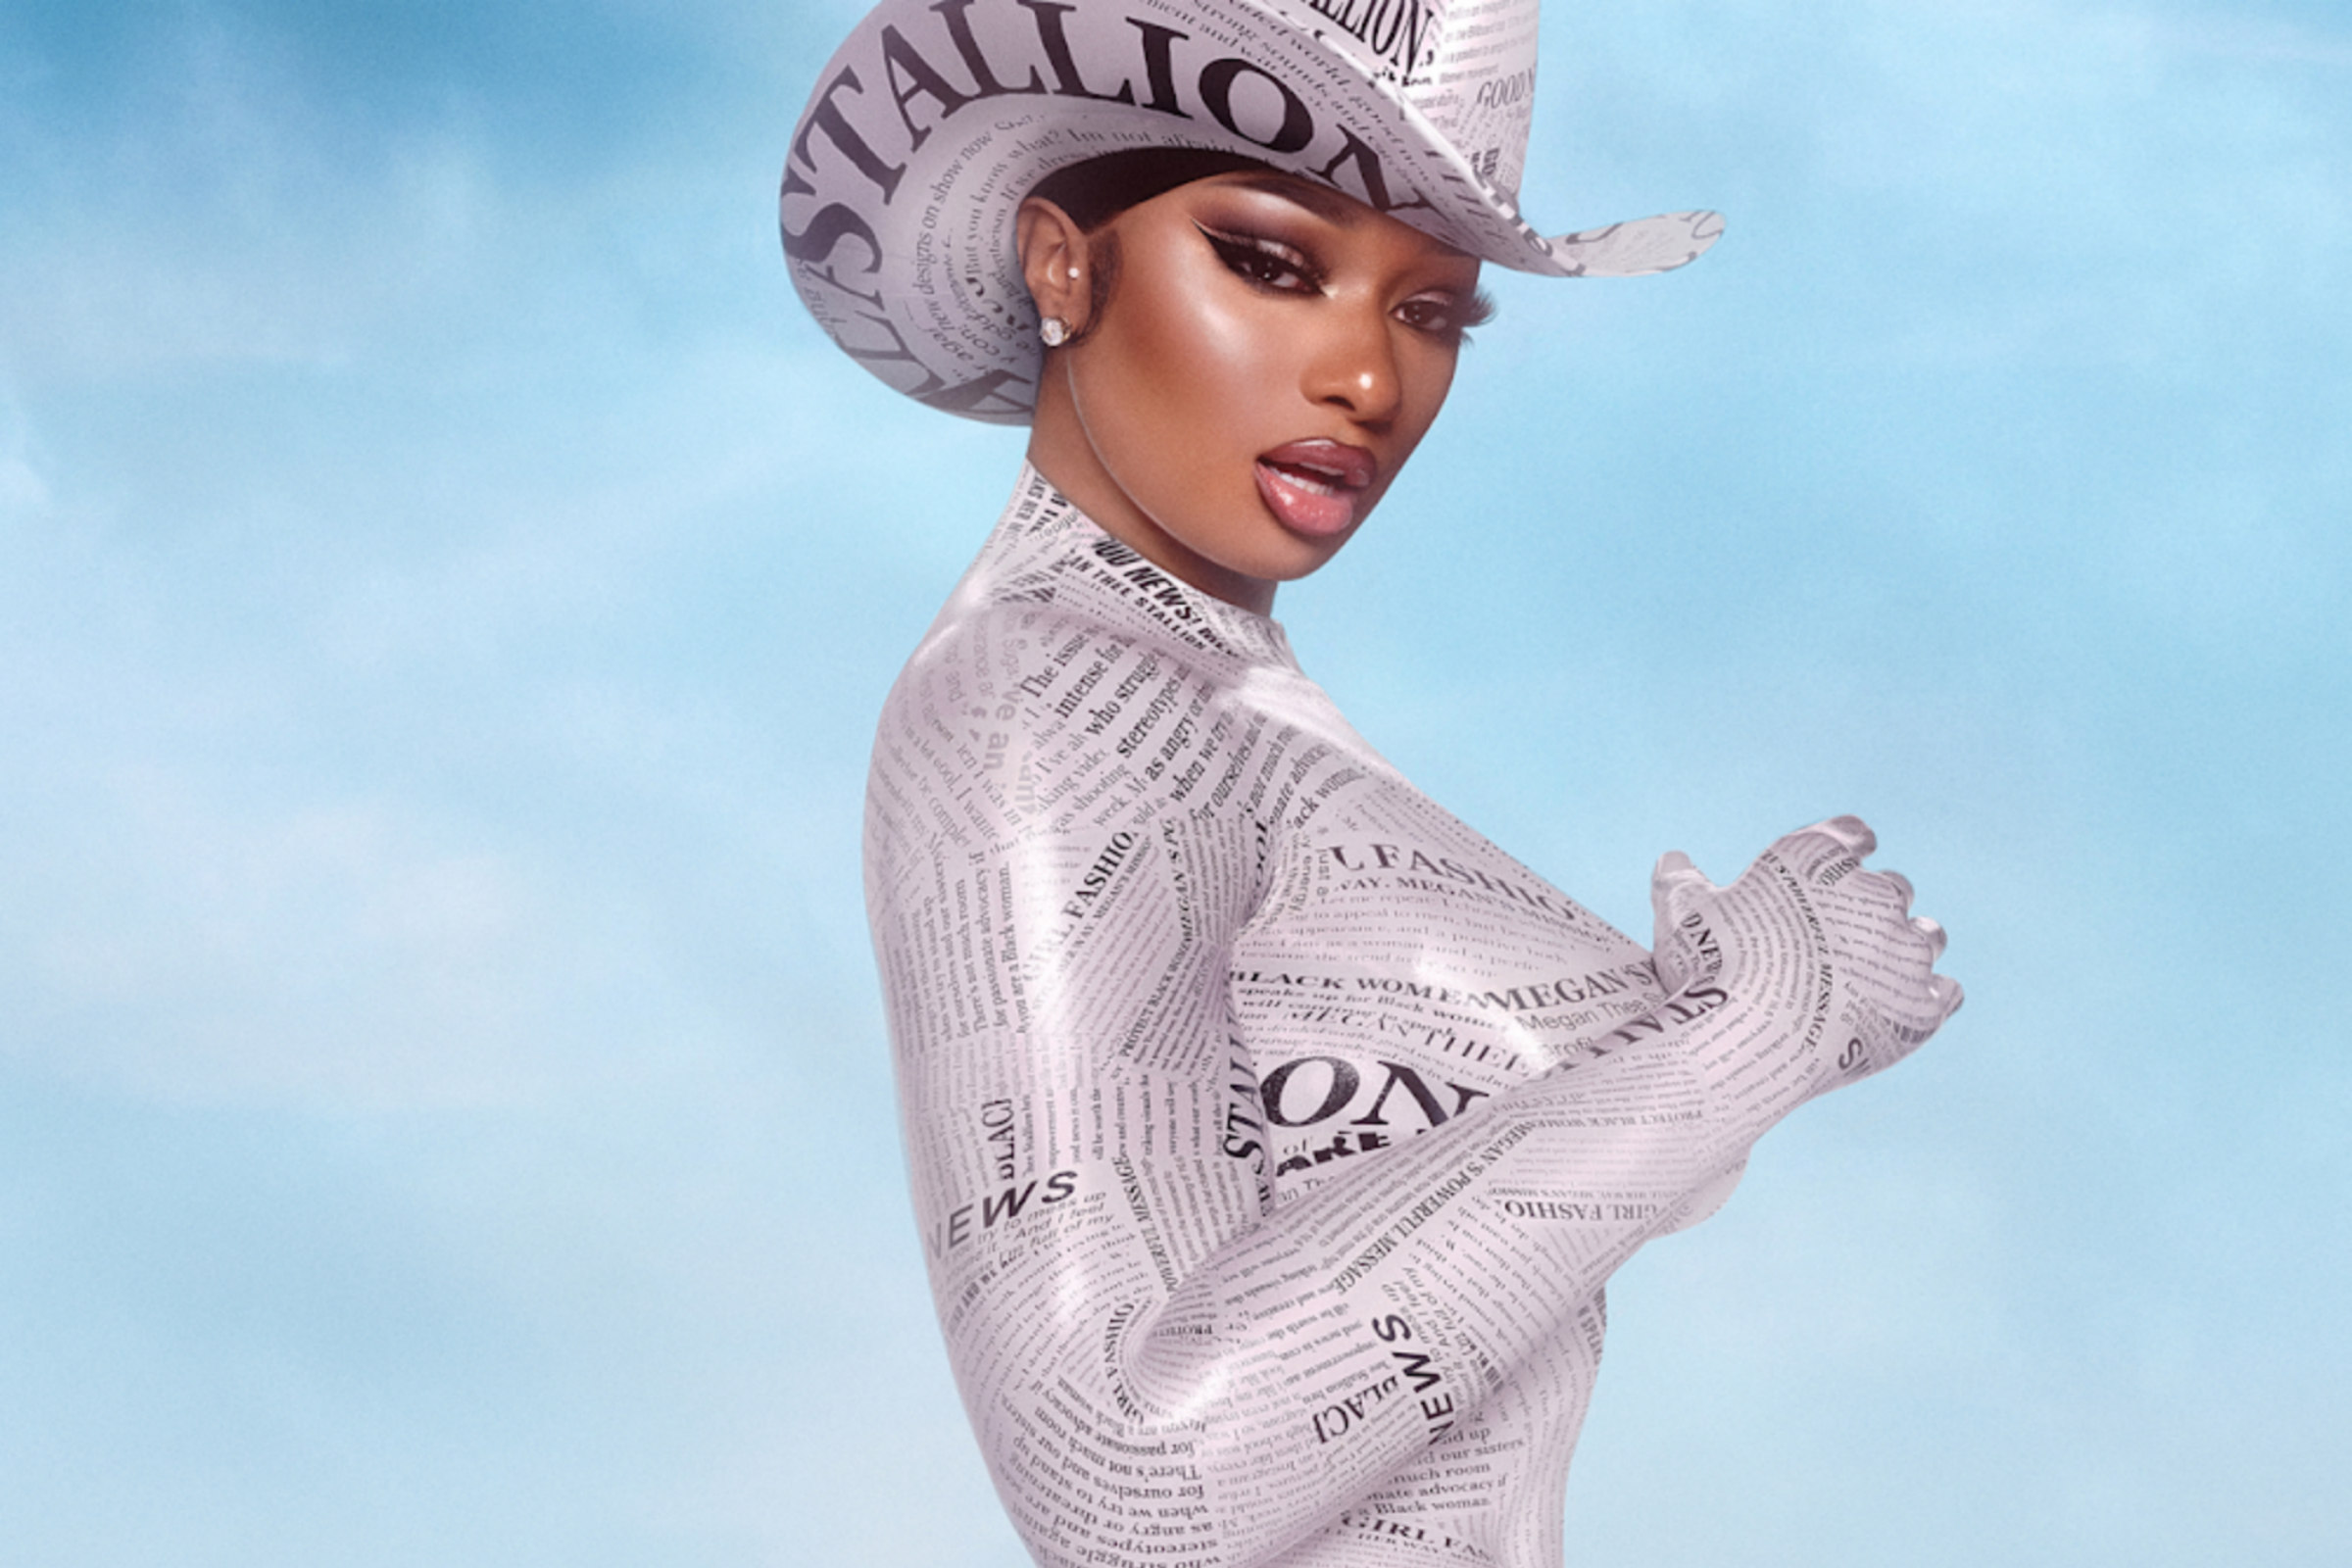 Megan Thee Stallion, a brownskinned Black woman, poses against a light blue background in a newspaper-covered outfit and cowboy hat